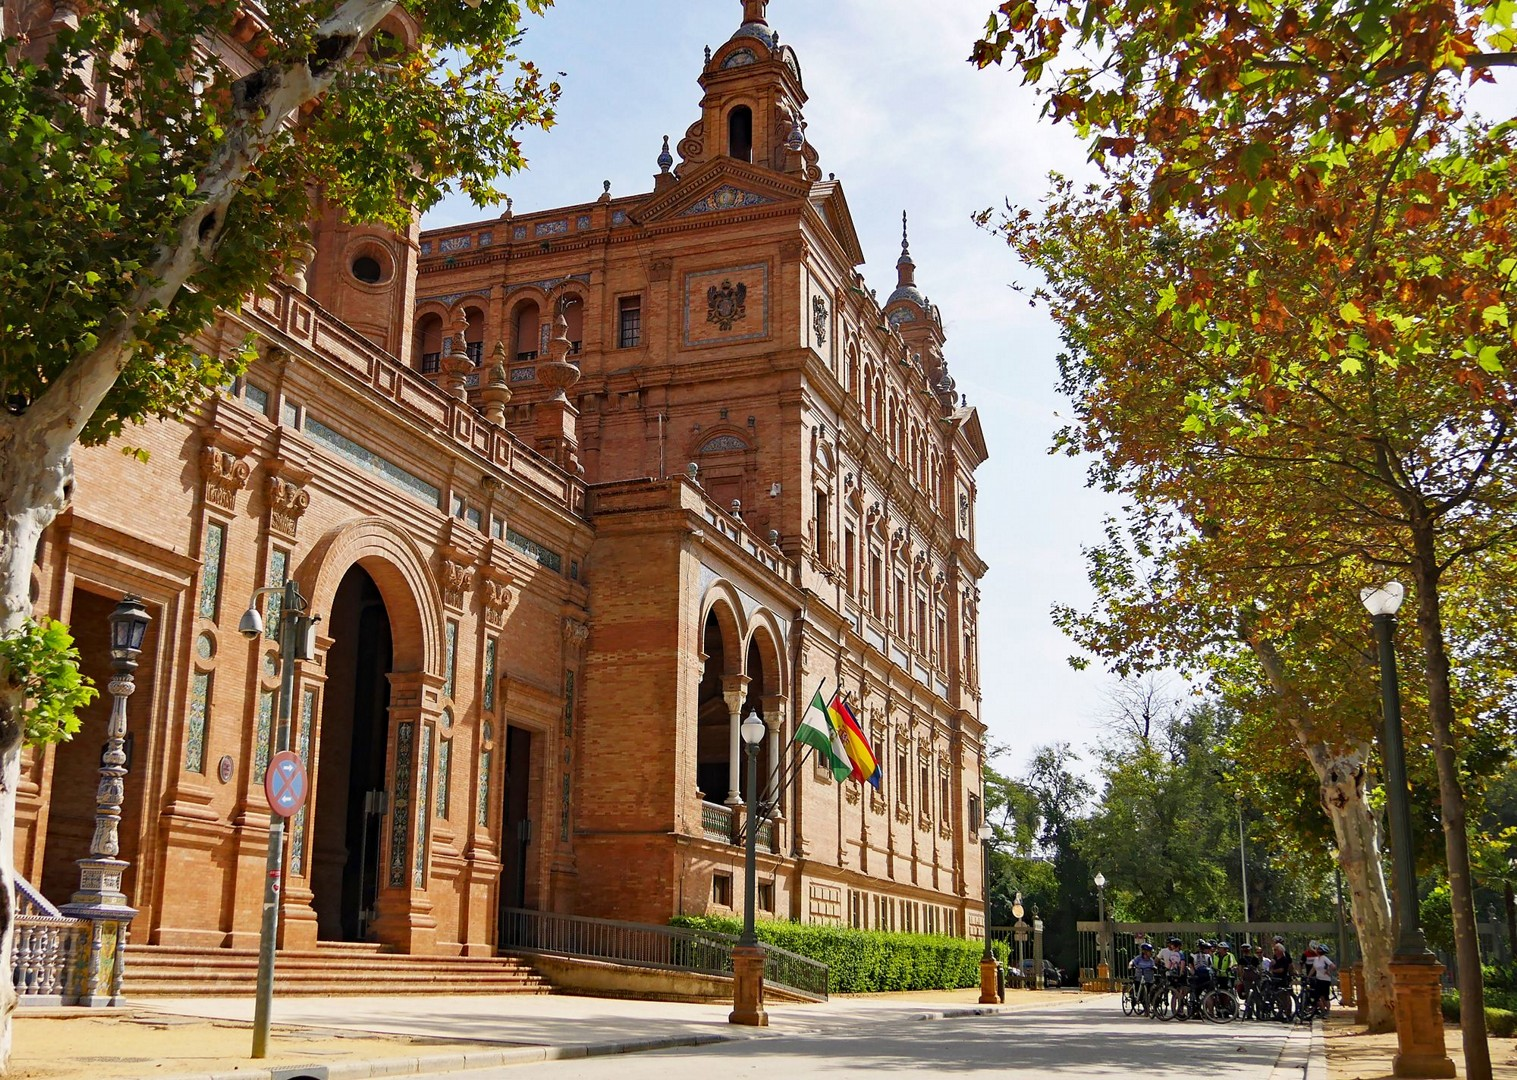 spain-granada-to-seville-cycling-holiday.jpg - Southern Spain - Granada to Seville - Self-Guided Leisure Cycling Holiday - Leisure Cycling